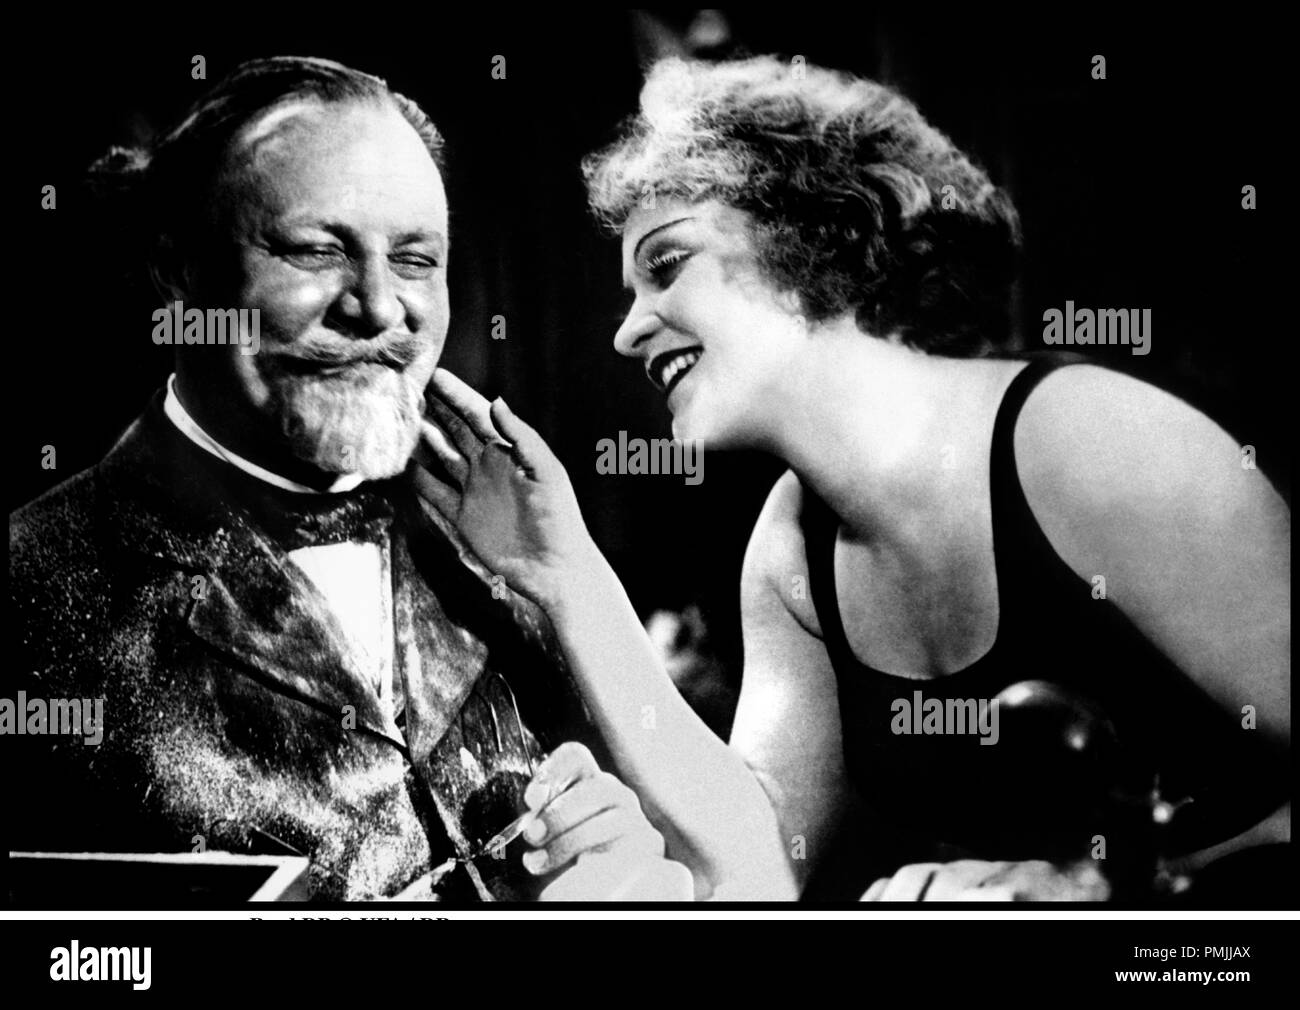 Der Blaue Engel Josef Von Sternberg Dr Emil Black And White Stock Photos And Images Alamy